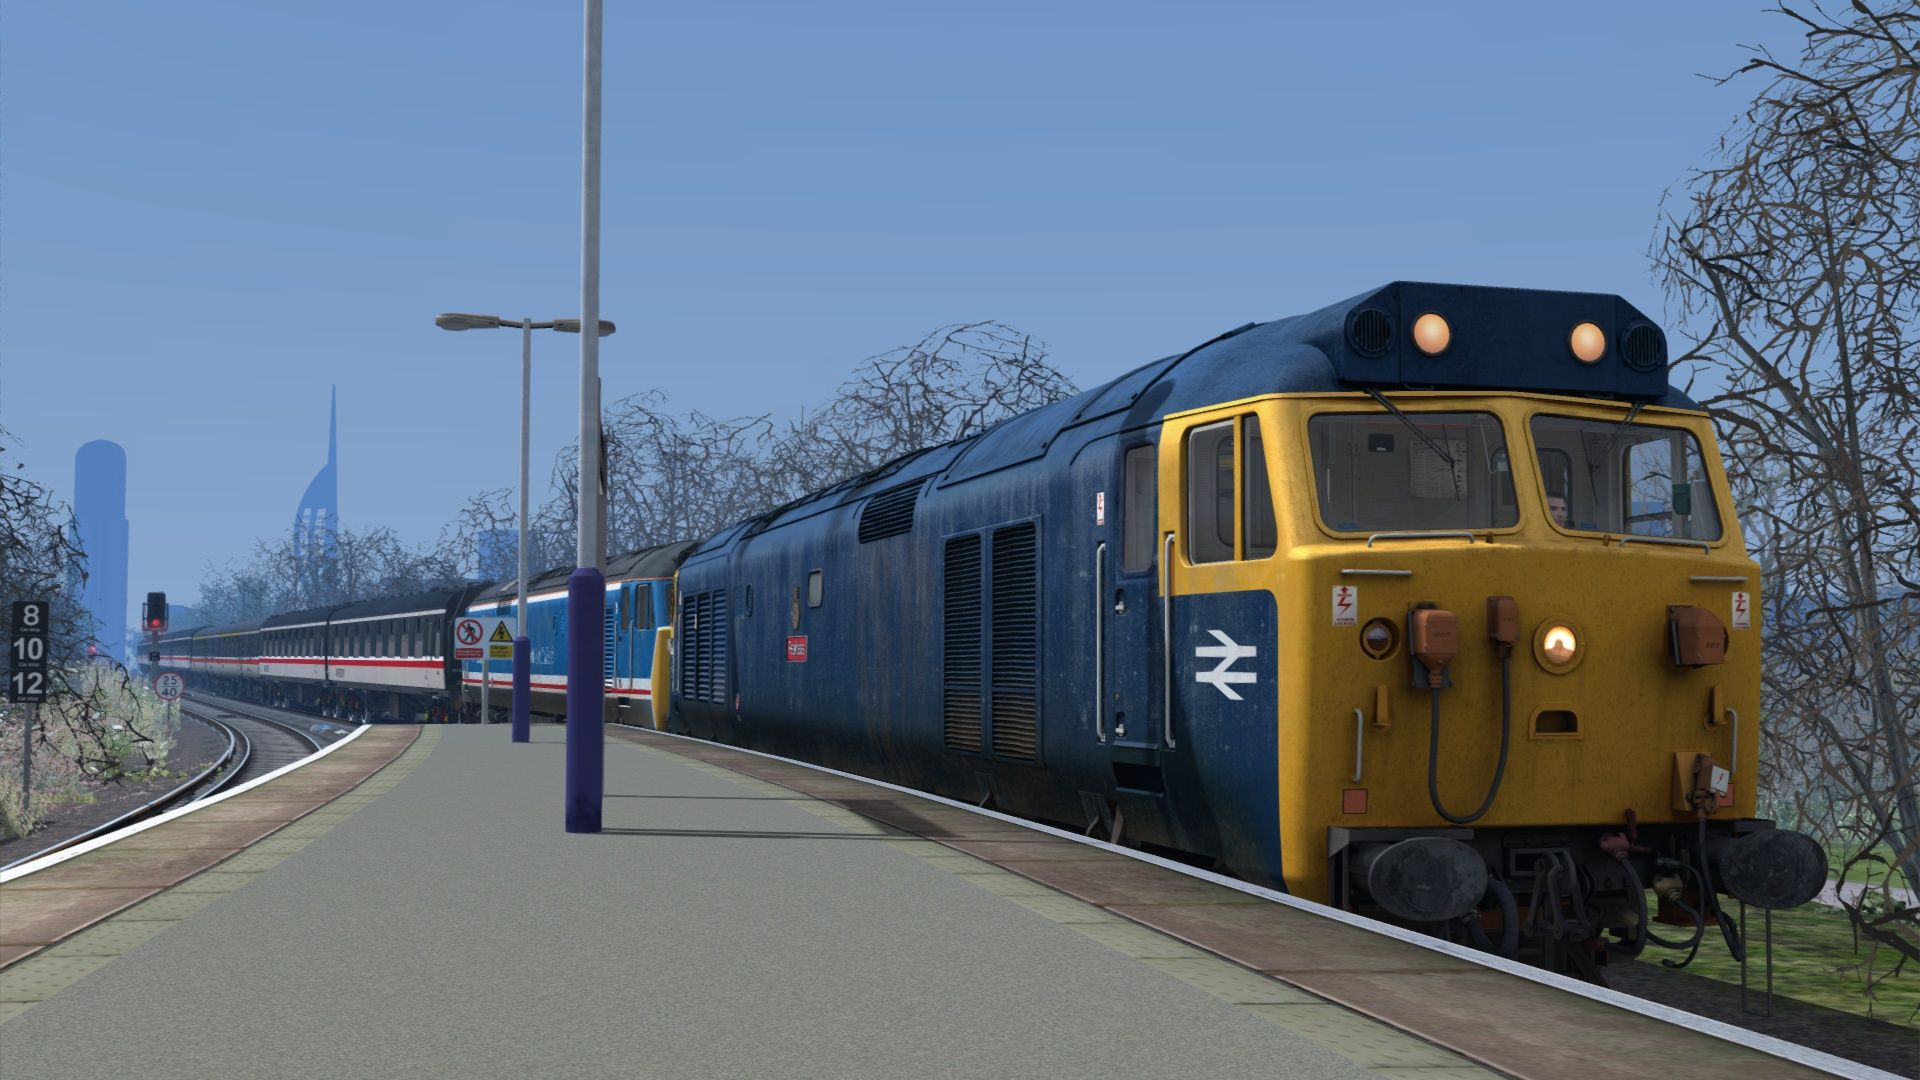 Screenshot_Portsmouth Direct Line - London Waterloo to Portsmouth_50.79830--1.09257_13-35-29.jpg